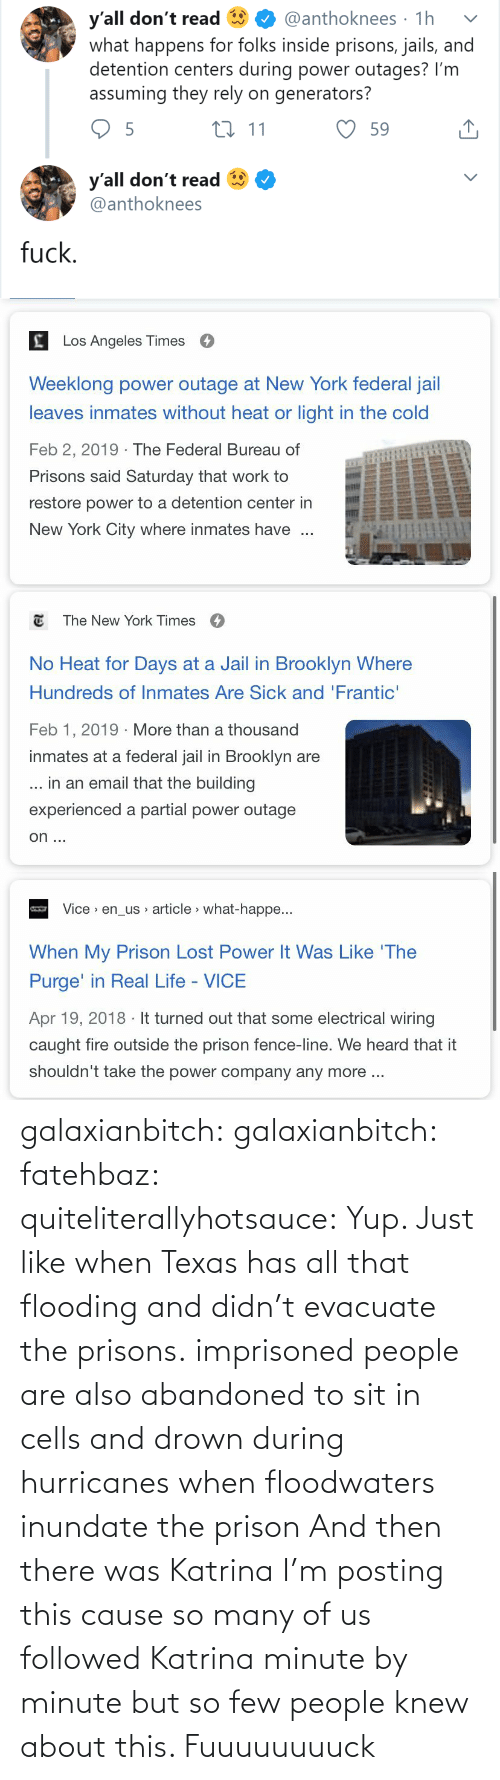 Partial: y'all don't read  what happens for folks inside prisons, jails, and  detention centers during power outages? I'm  assuming they rely on generators?  @anthoknees · 1h  27 11  59  y'all don't read  @anthoknees  fuck.   Los Angeles Times  Weeklong power outage at New York federal jail  leaves inmates without heat or light in the cold  Feb 2, 2019 · The Federal Bureau of  Prisons said Saturday that work to  restore power to a detention center in  New York City where inmates have   E The New York Times  O  No Heat for Days at a Jail in Brooklyn Where  Hundreds of Inmates Are Sick and 'Frantic'  Feb 1, 2019 · More than a thousand  inmates at a federal jail in Brooklyn are  ... in an email that the building  experienced a partial power outage  on ...   Vice > en_us article > what-happe...  When My Prison Lost Power It Was Like 'The  Purge' in Real Life - VICE  Apr 19, 2018 · It turned out that some electrical wiring  caught fire outside the prison fence-line. We heard that it  shouldn't take the power company any more .. galaxianbitch: galaxianbitch:   fatehbaz:  quiteliterallyhotsauce:   Yup. Just like when Texas has all that flooding and didn't evacuate the prisons.   imprisoned people are also abandoned to sit in cells and drown during hurricanes when floodwaters inundate the prison   And then there was Katrina        I'm posting this cause so many of us followed Katrina minute by minute but so few people knew about this.    Fuuuuuuuuck